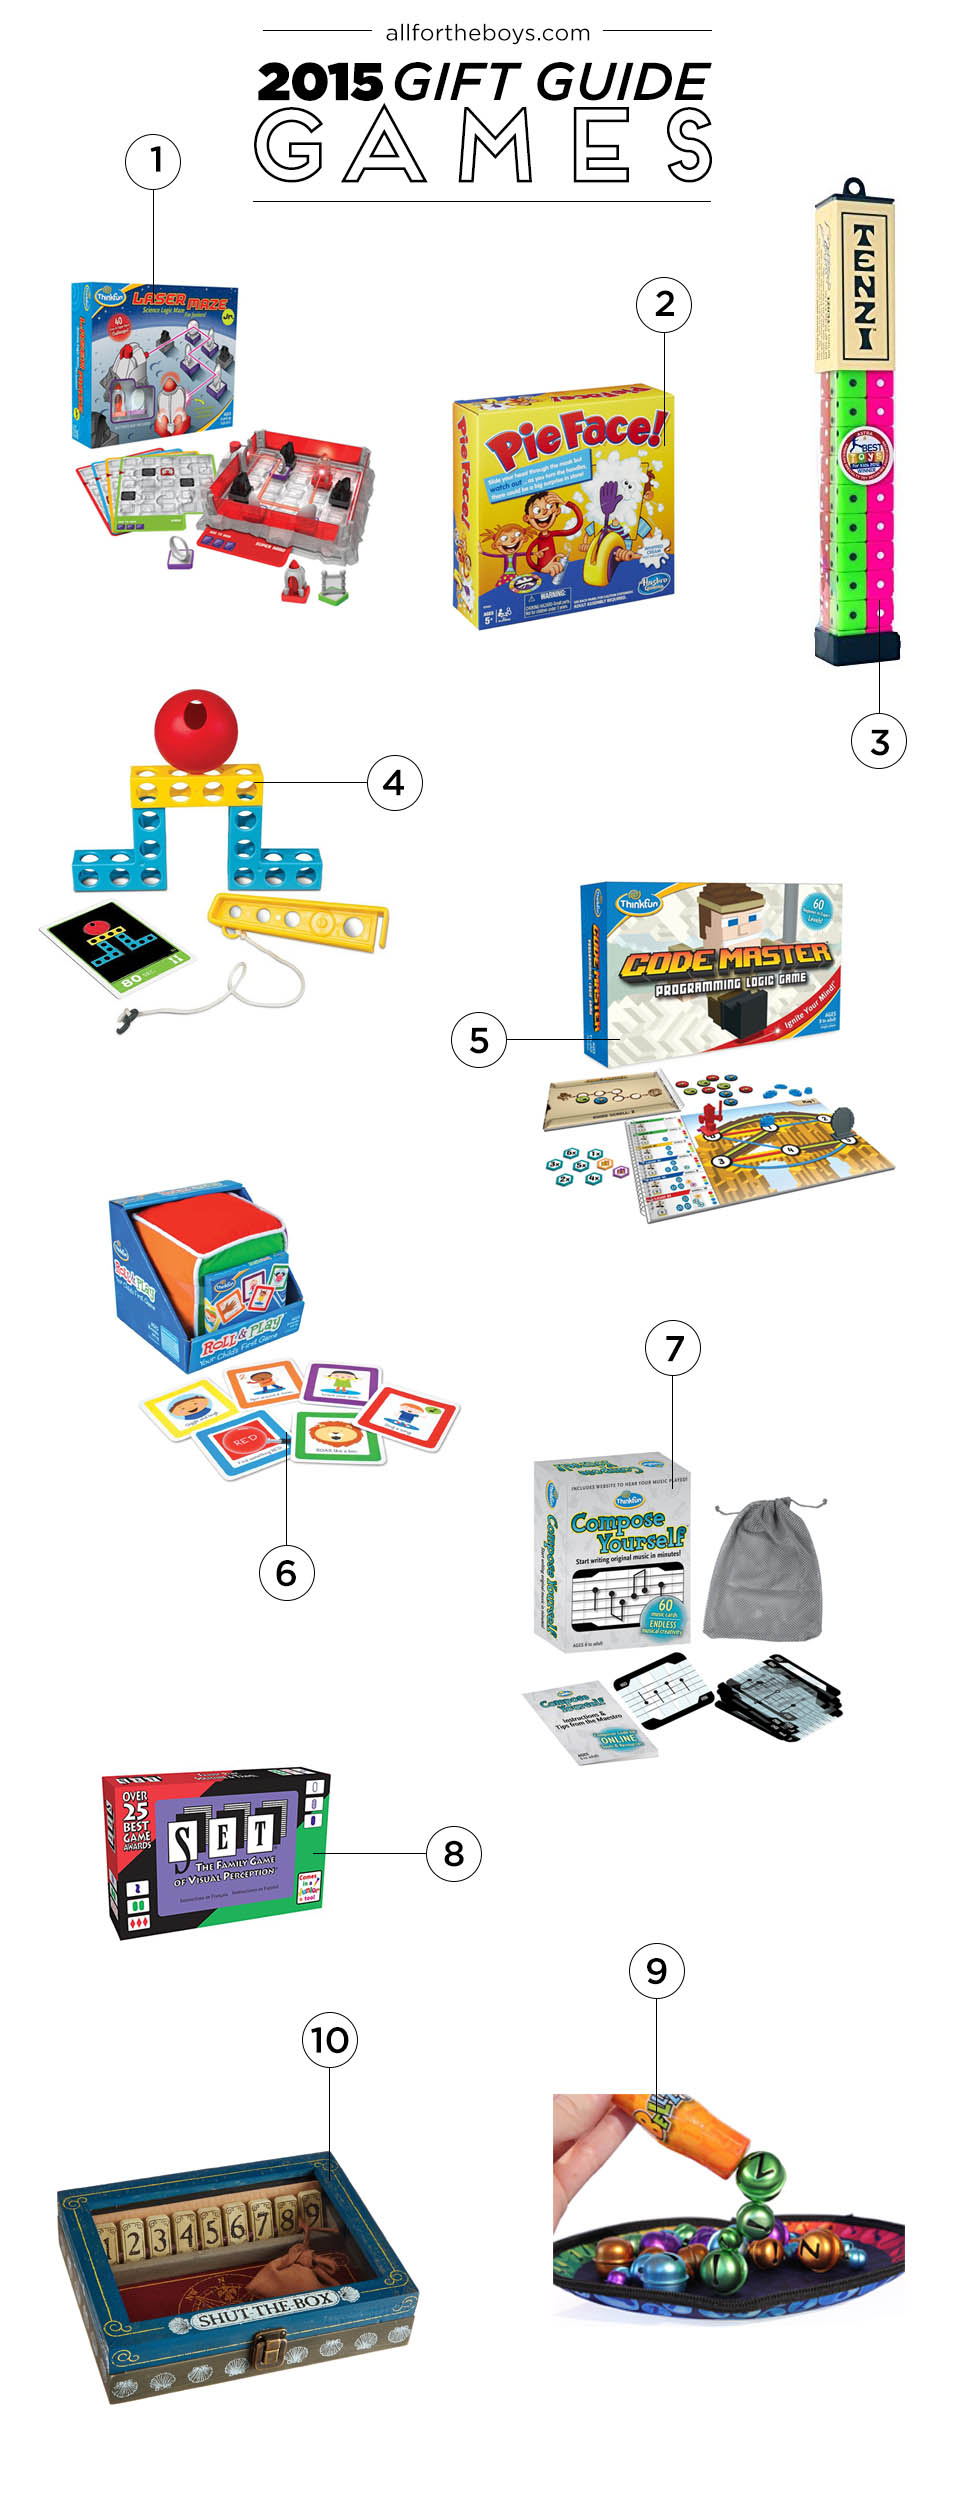 2015 gift guide from blogger allfortheboys.com - a great list of board games!